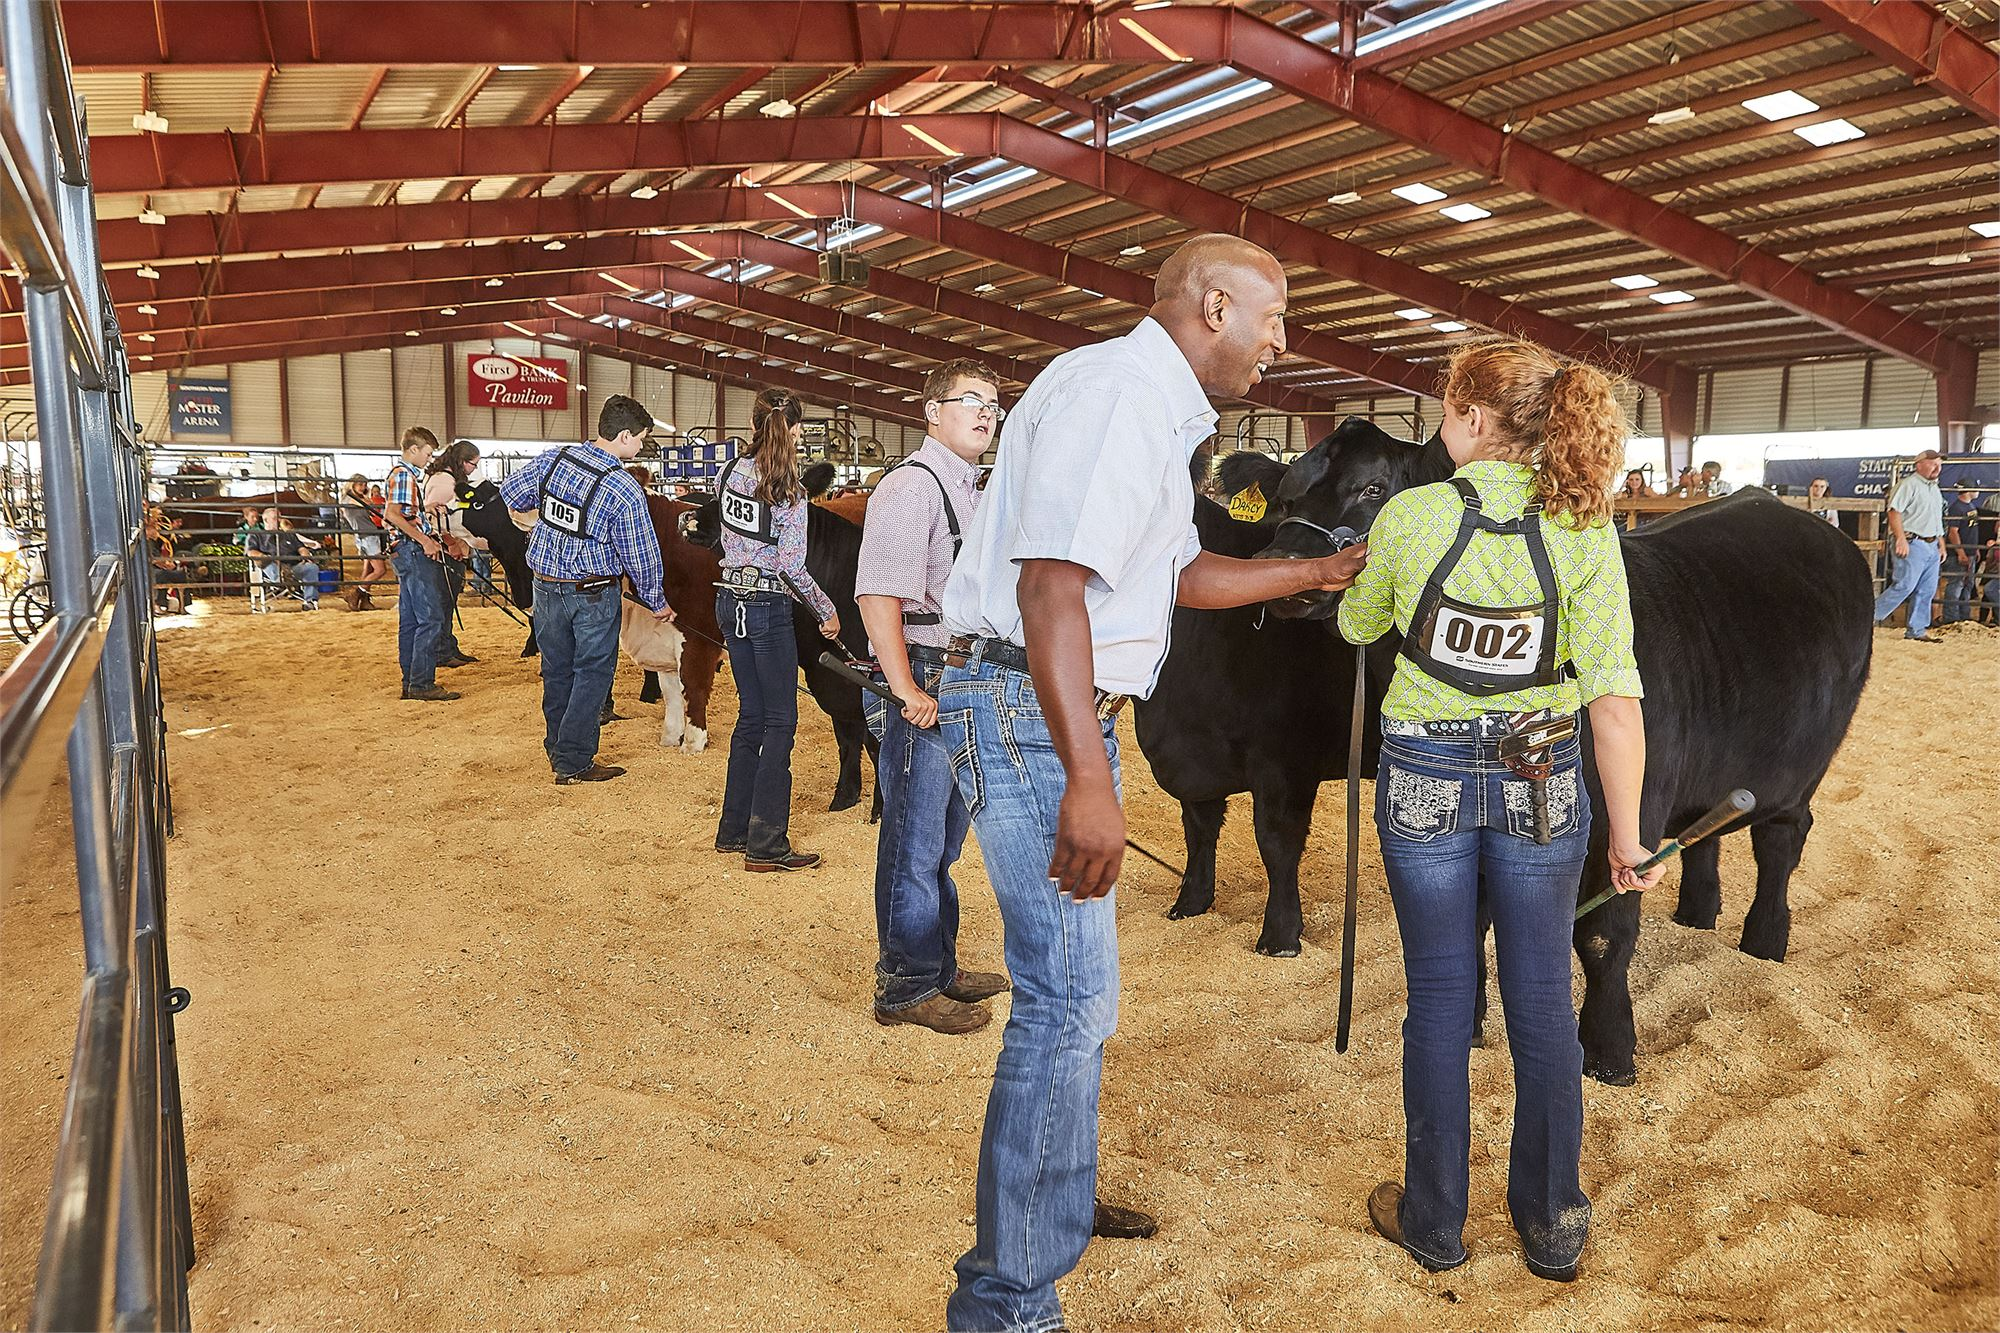 State Fair Of Virginia Competitions Offer Scholarships, Trips, And Positive Vibes